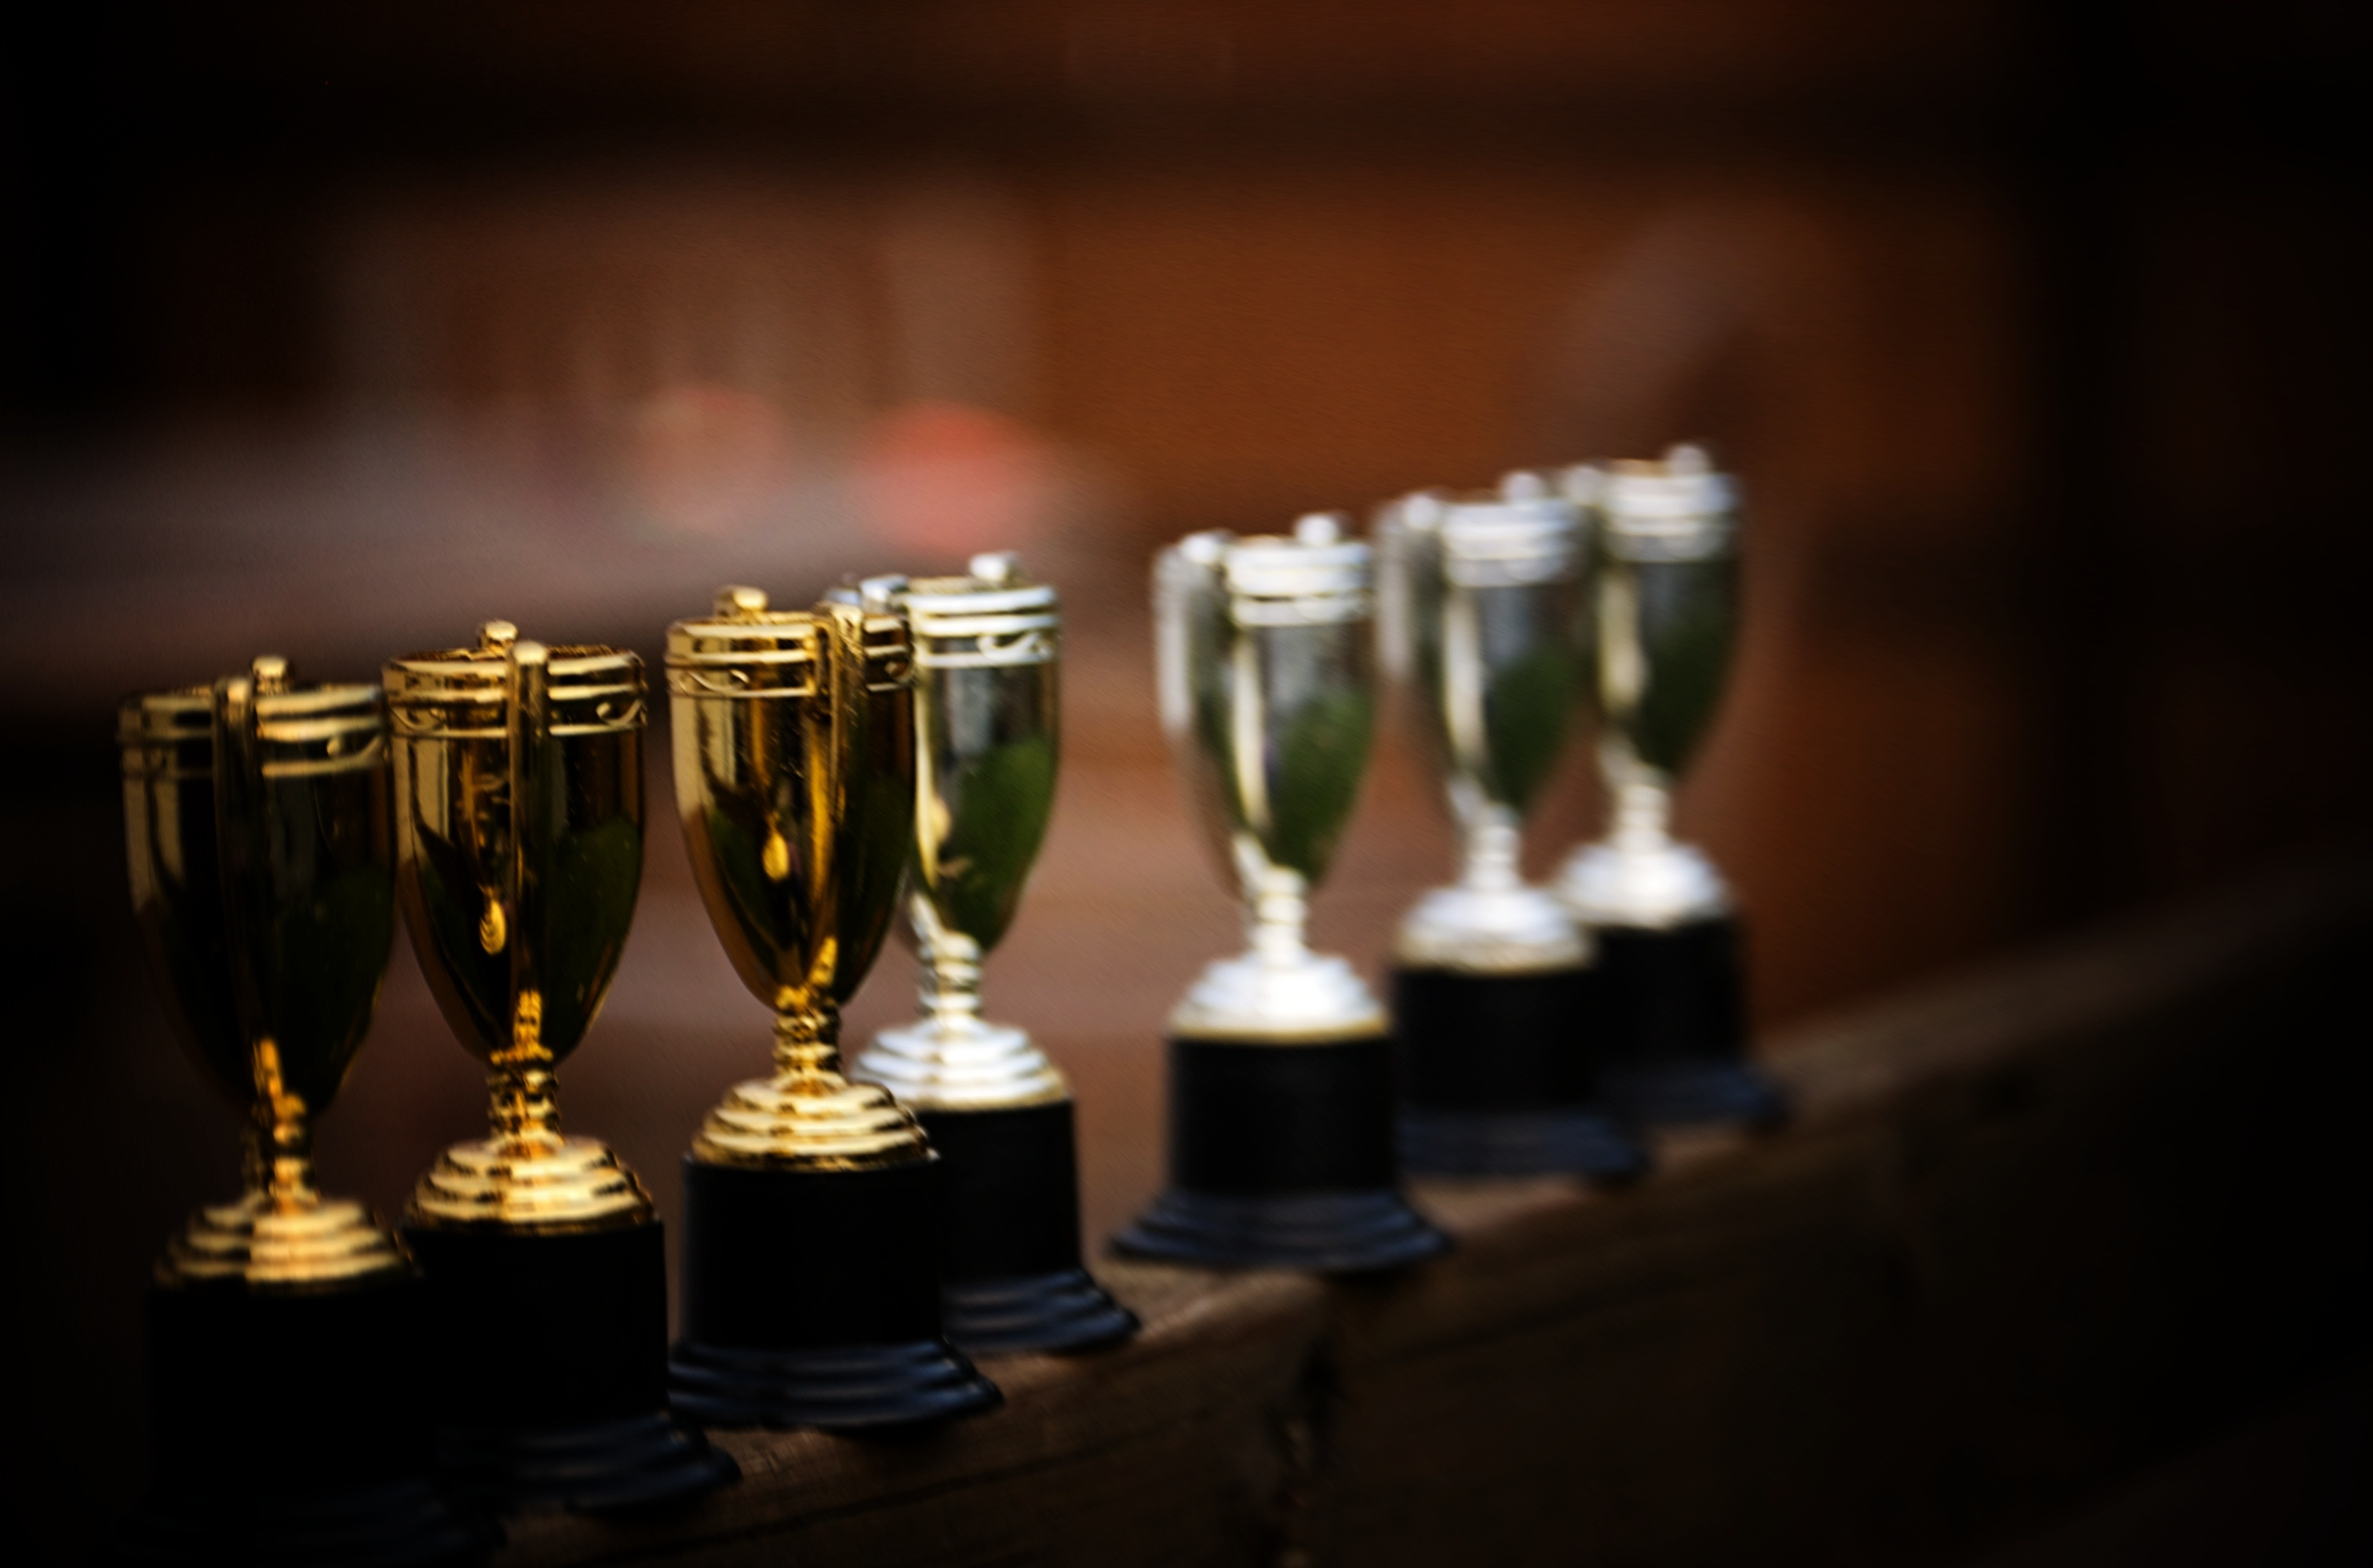 A row of trophies